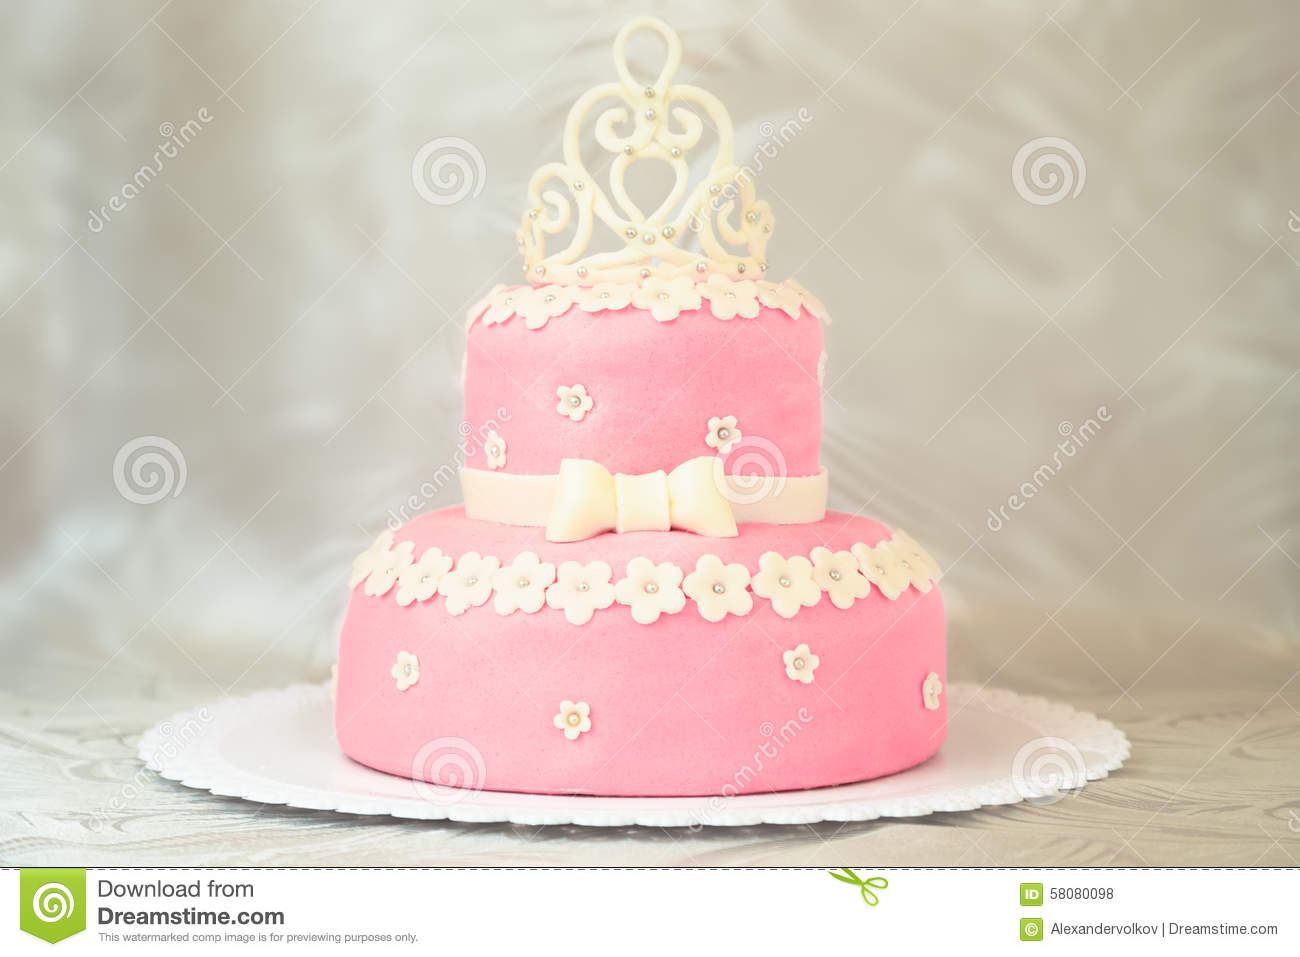 Pink cake with a crown stock photo. Image of decoration - 58080098